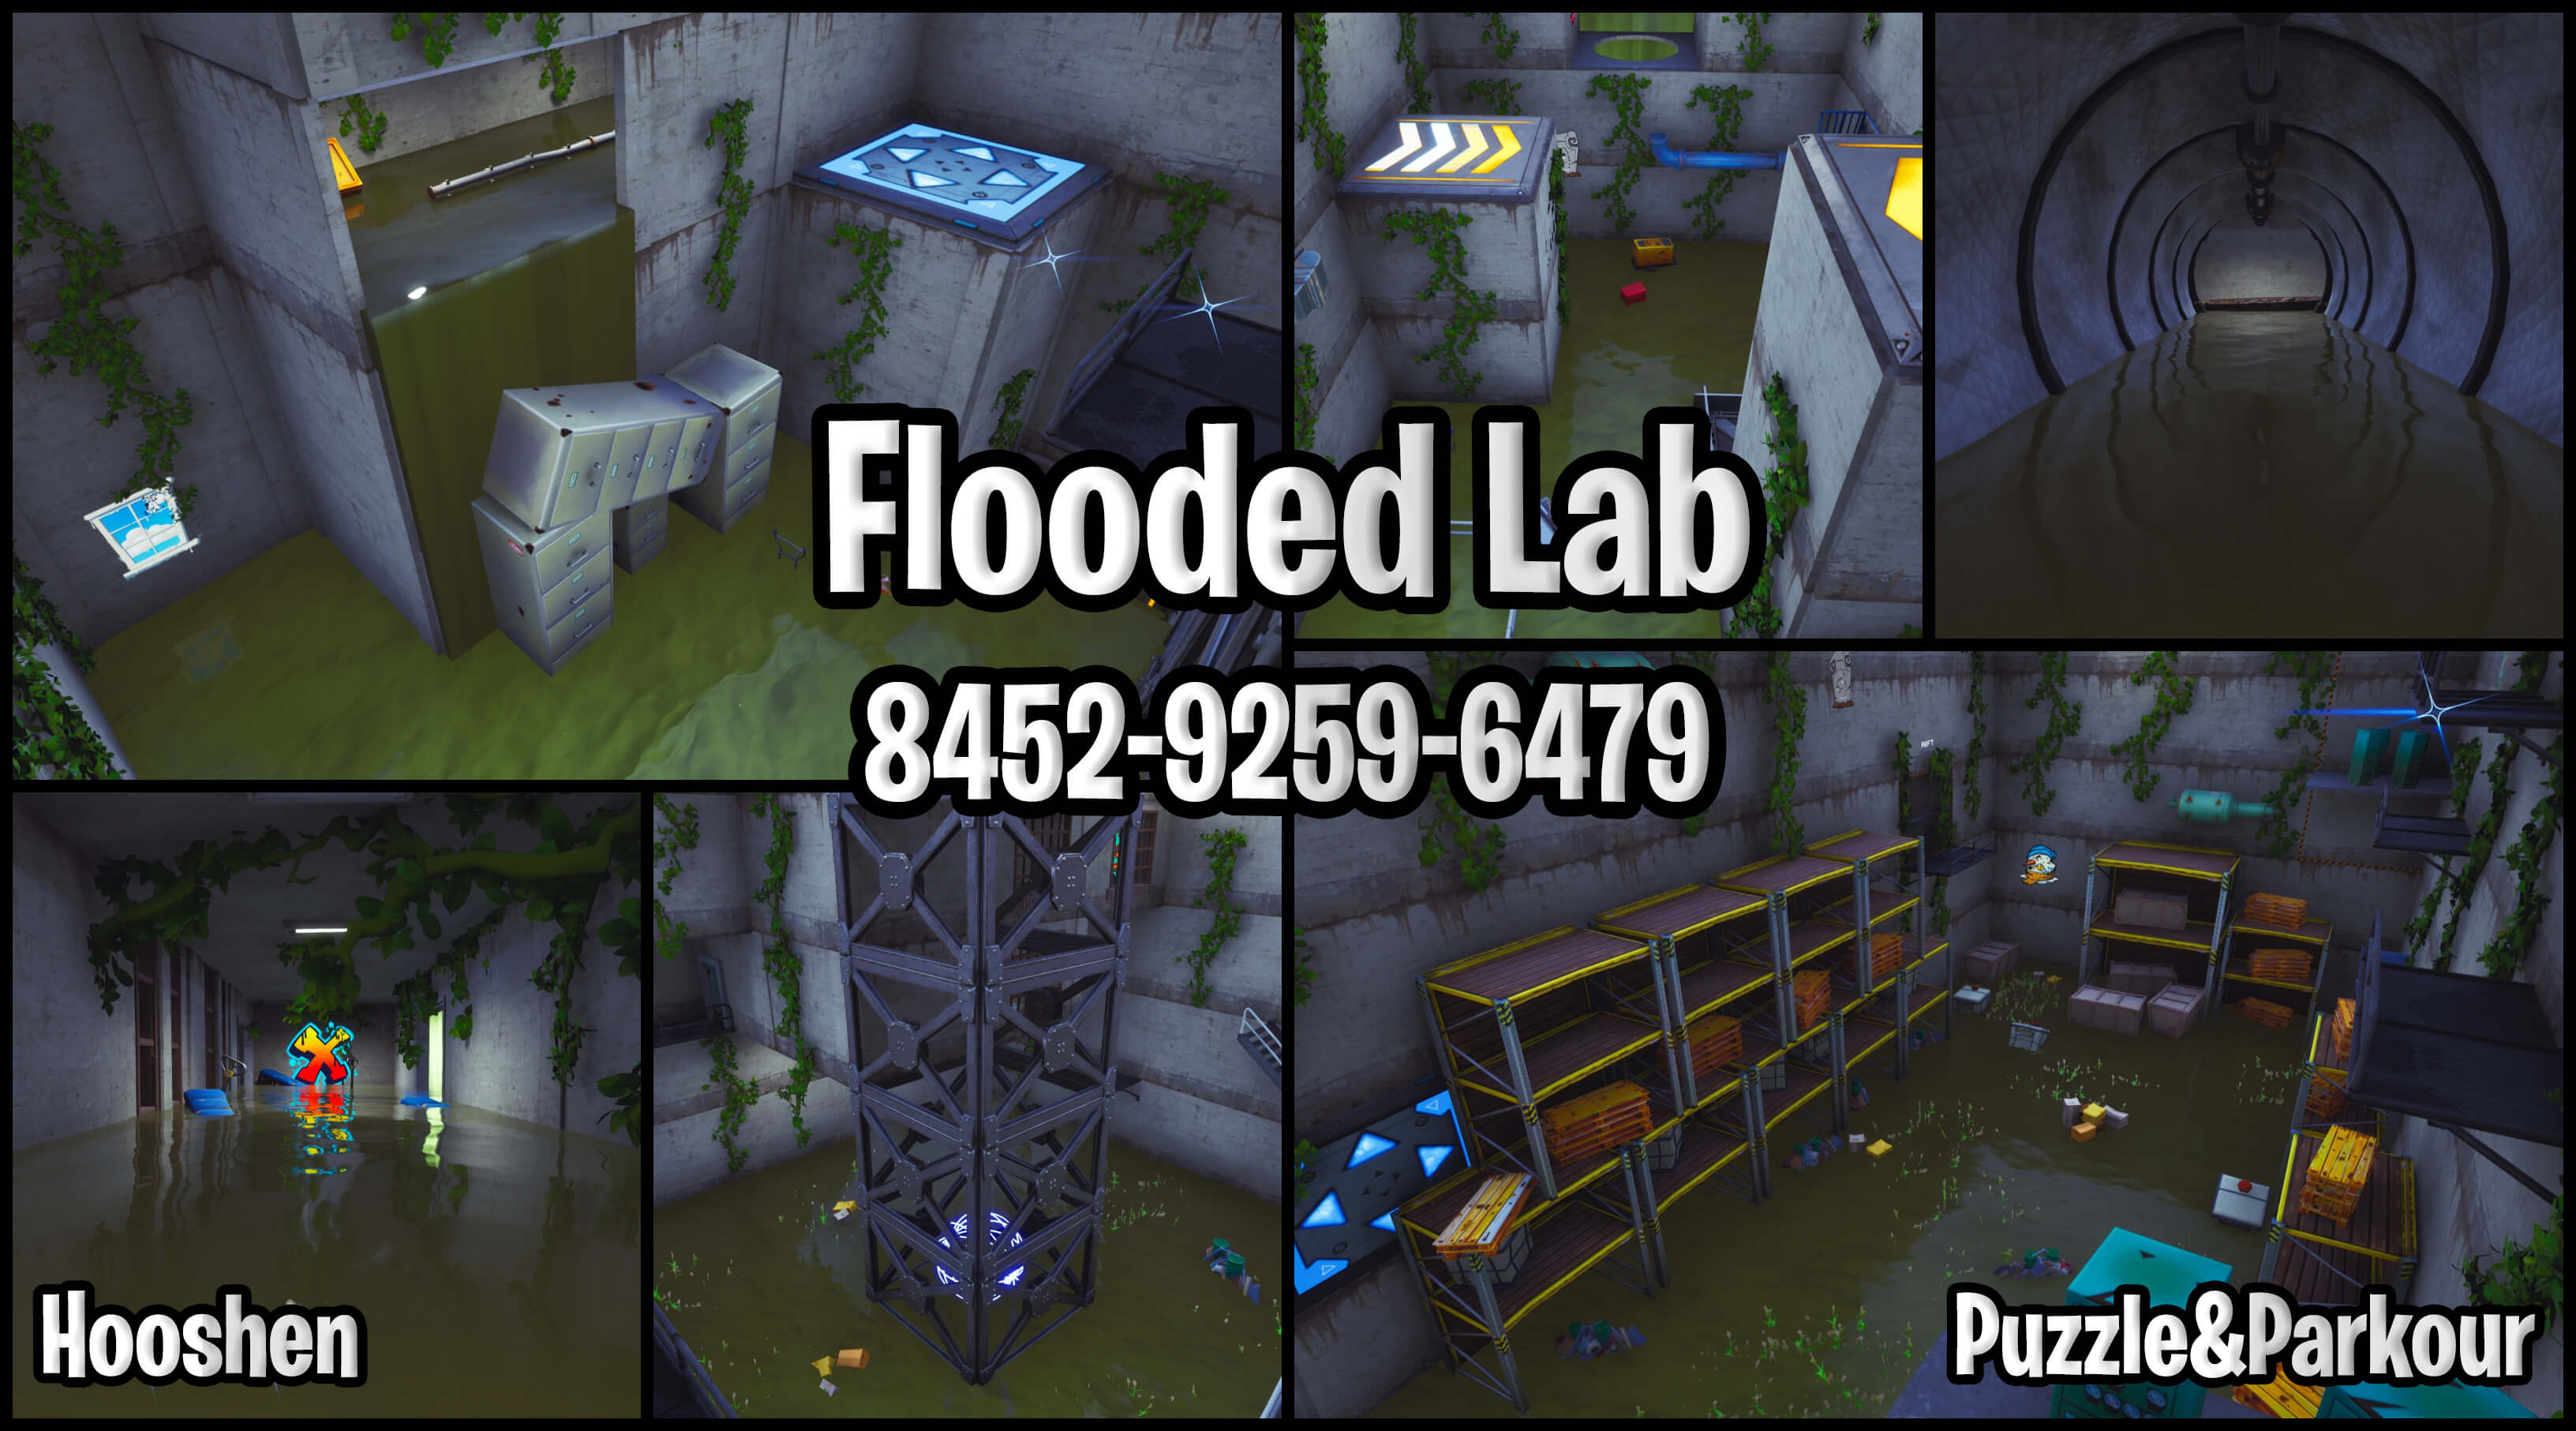 FLOODED LAB